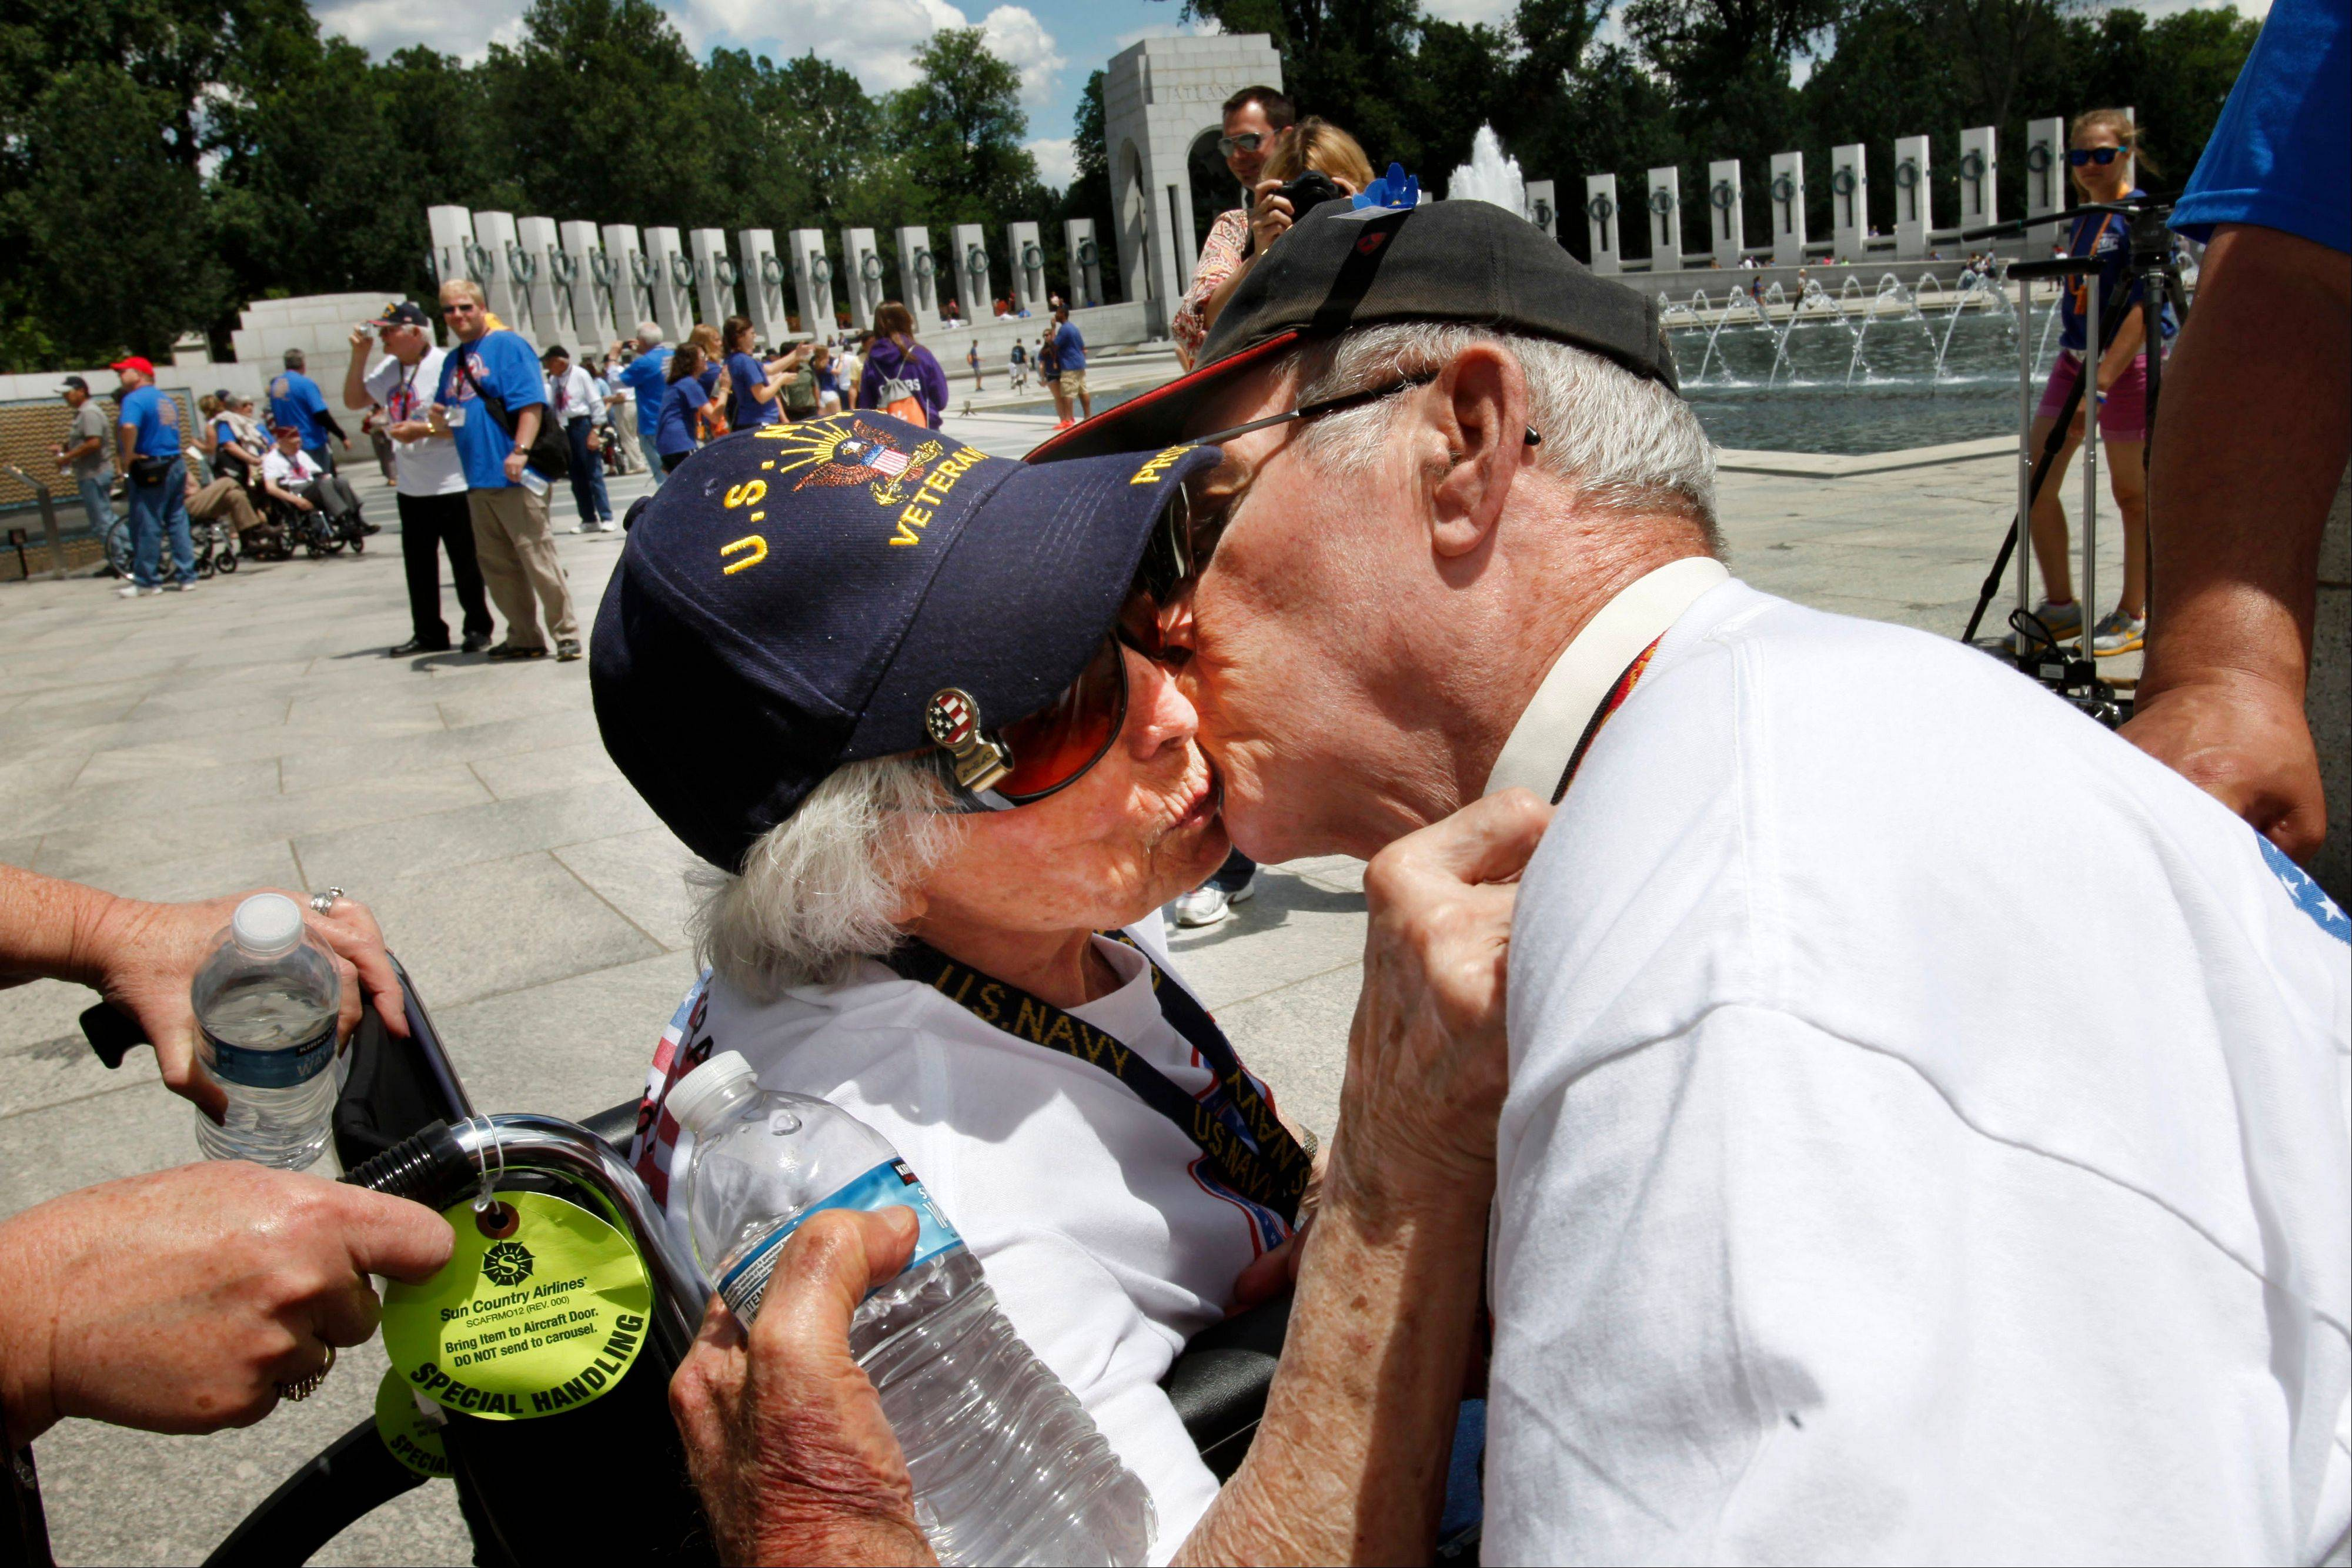 WWII Navy veteran Josephine Bussard, 89, left, and her husband WWII Marine Corps veteran Murray Bussard, 88, of Springfield, Mo., who will have been married 67 years this Friday and met during the war, kiss during a visit to the World War II Memorial in Washington, Wednesday, June 6, 2012, on the 68th anniversary of D-Day.